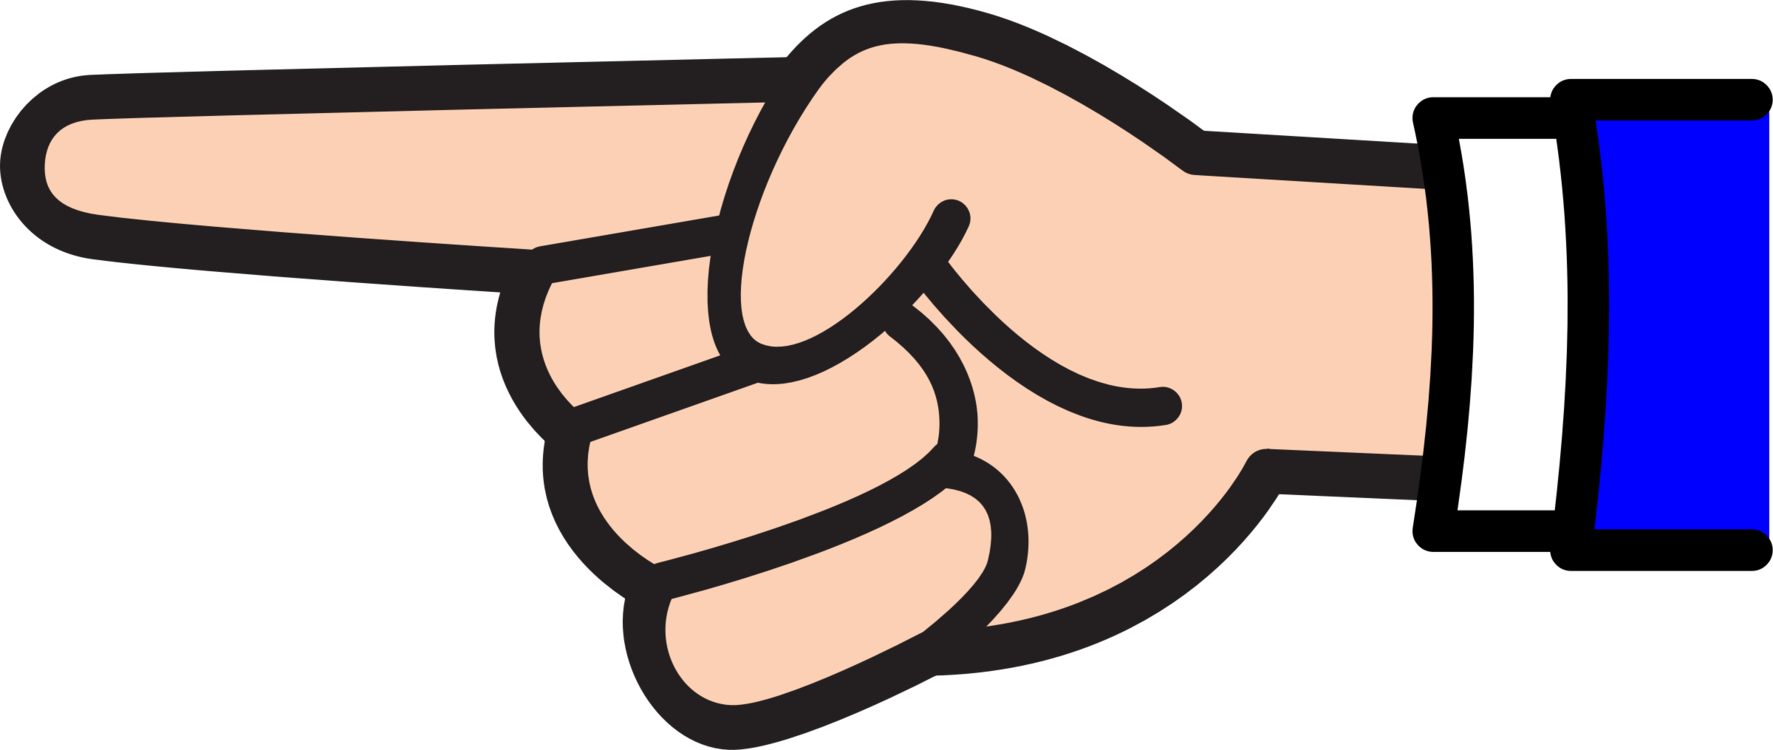 Middle clipart. Index finger point pointing